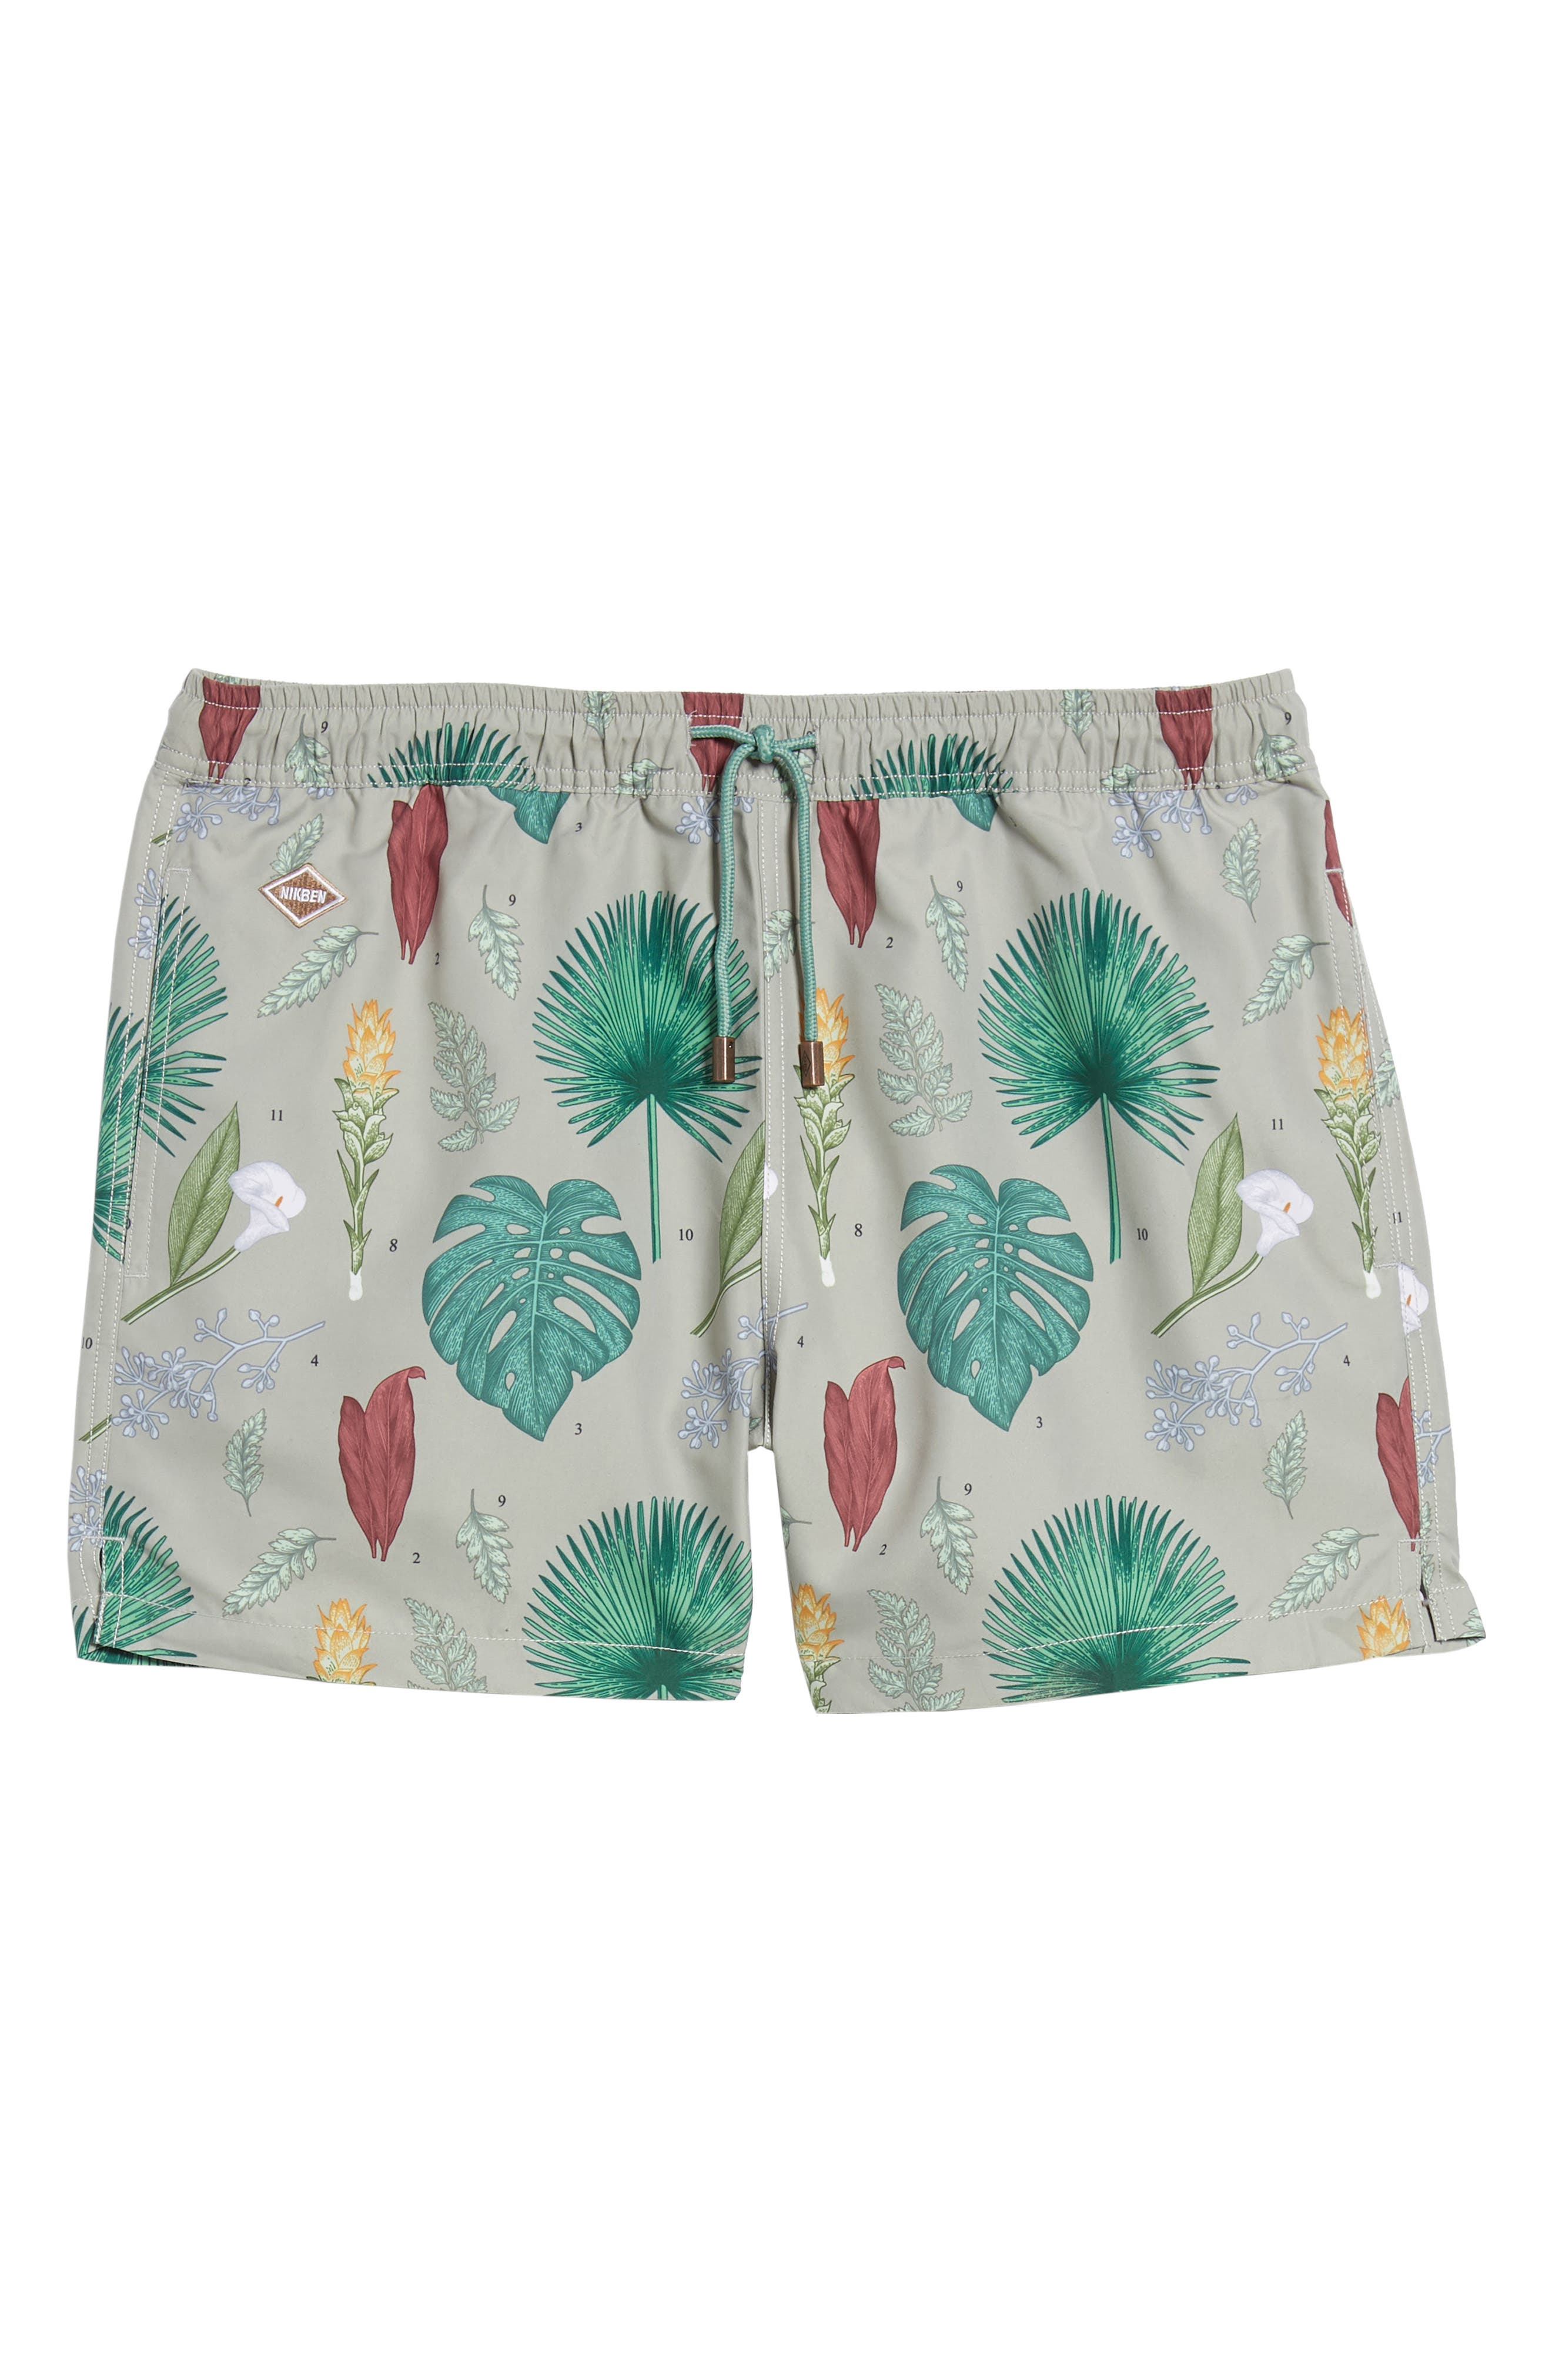 Flower Power Slim Fit Swim Trunks,                             Alternate thumbnail 6, color,                             300